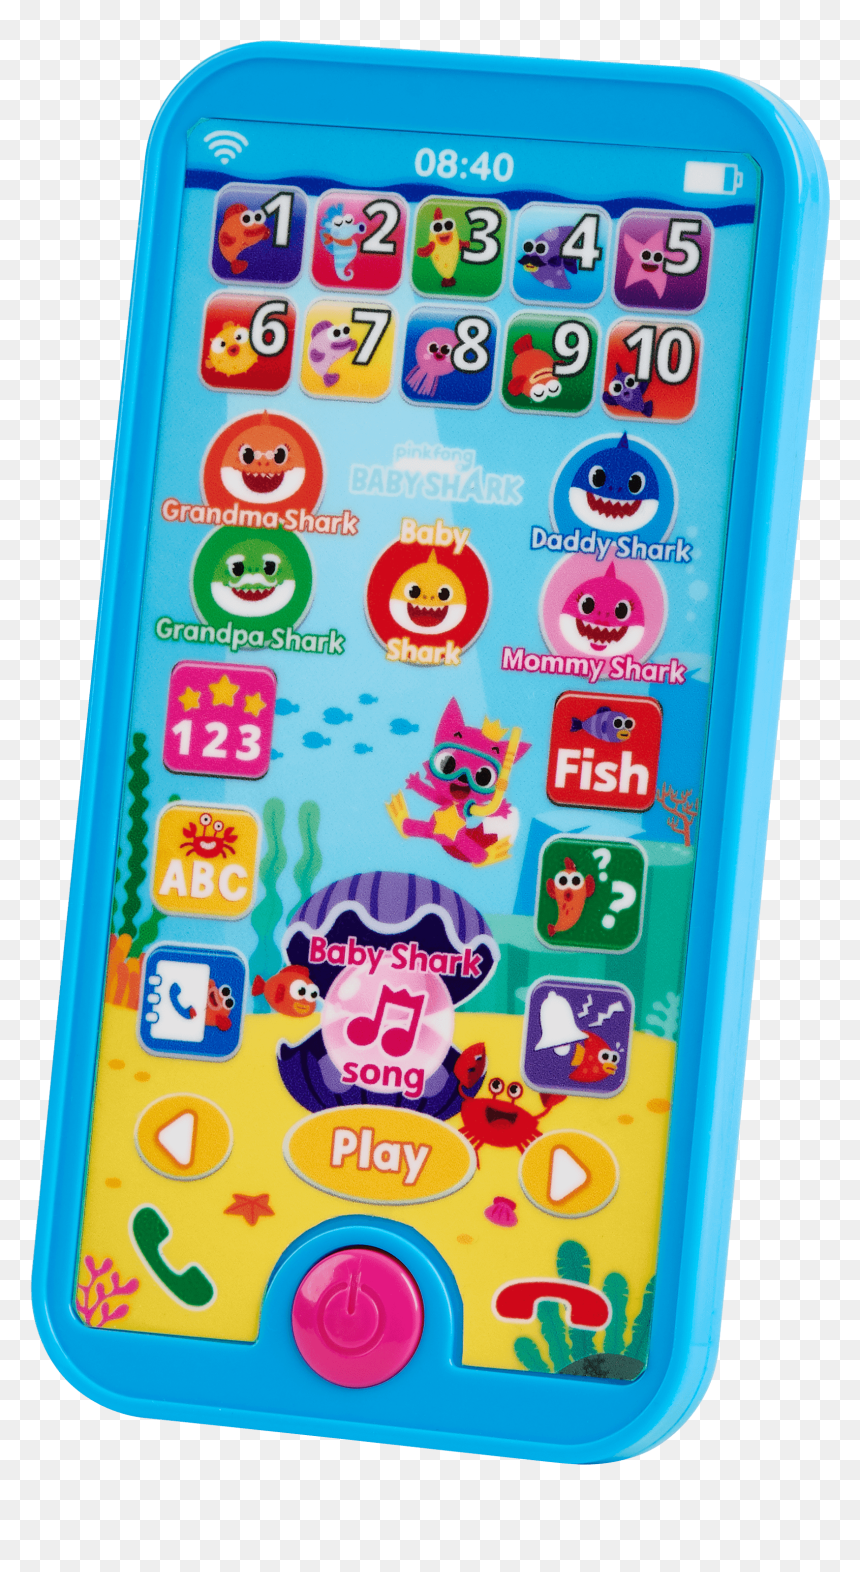 Pinkfong Shark Family Mike Wireless Singing Microphone Baby Shark Smartphone Hd Png Download Vhv